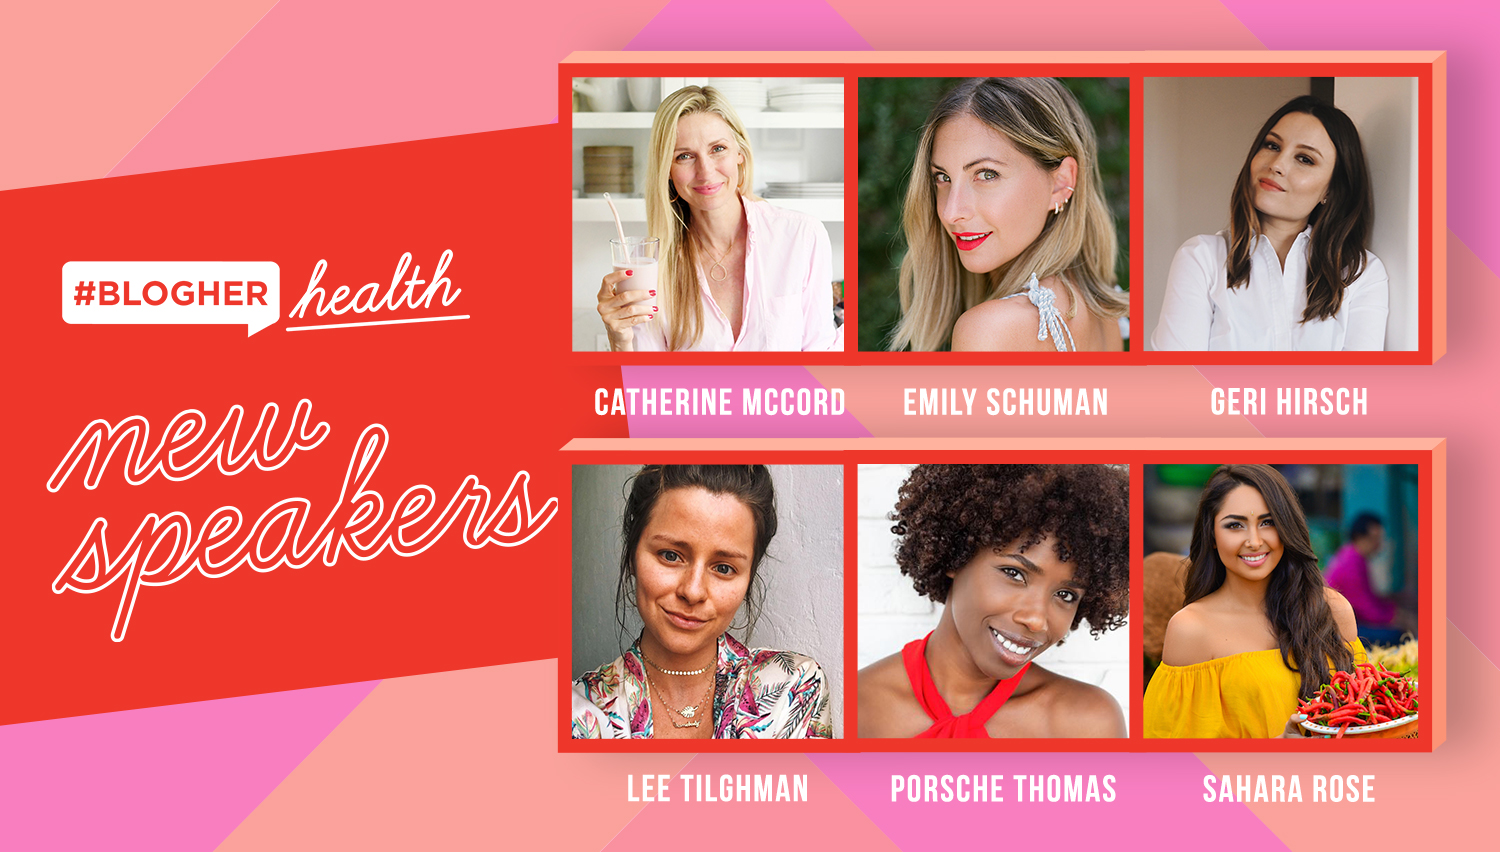 meet our new speakers - Join us in welcoming our new BlogHer Health speakers, Catherine McCord, Emily Schuman, Geri Hirsch, Lee Tilghman, Porsche Thomas and Sahara Rose!